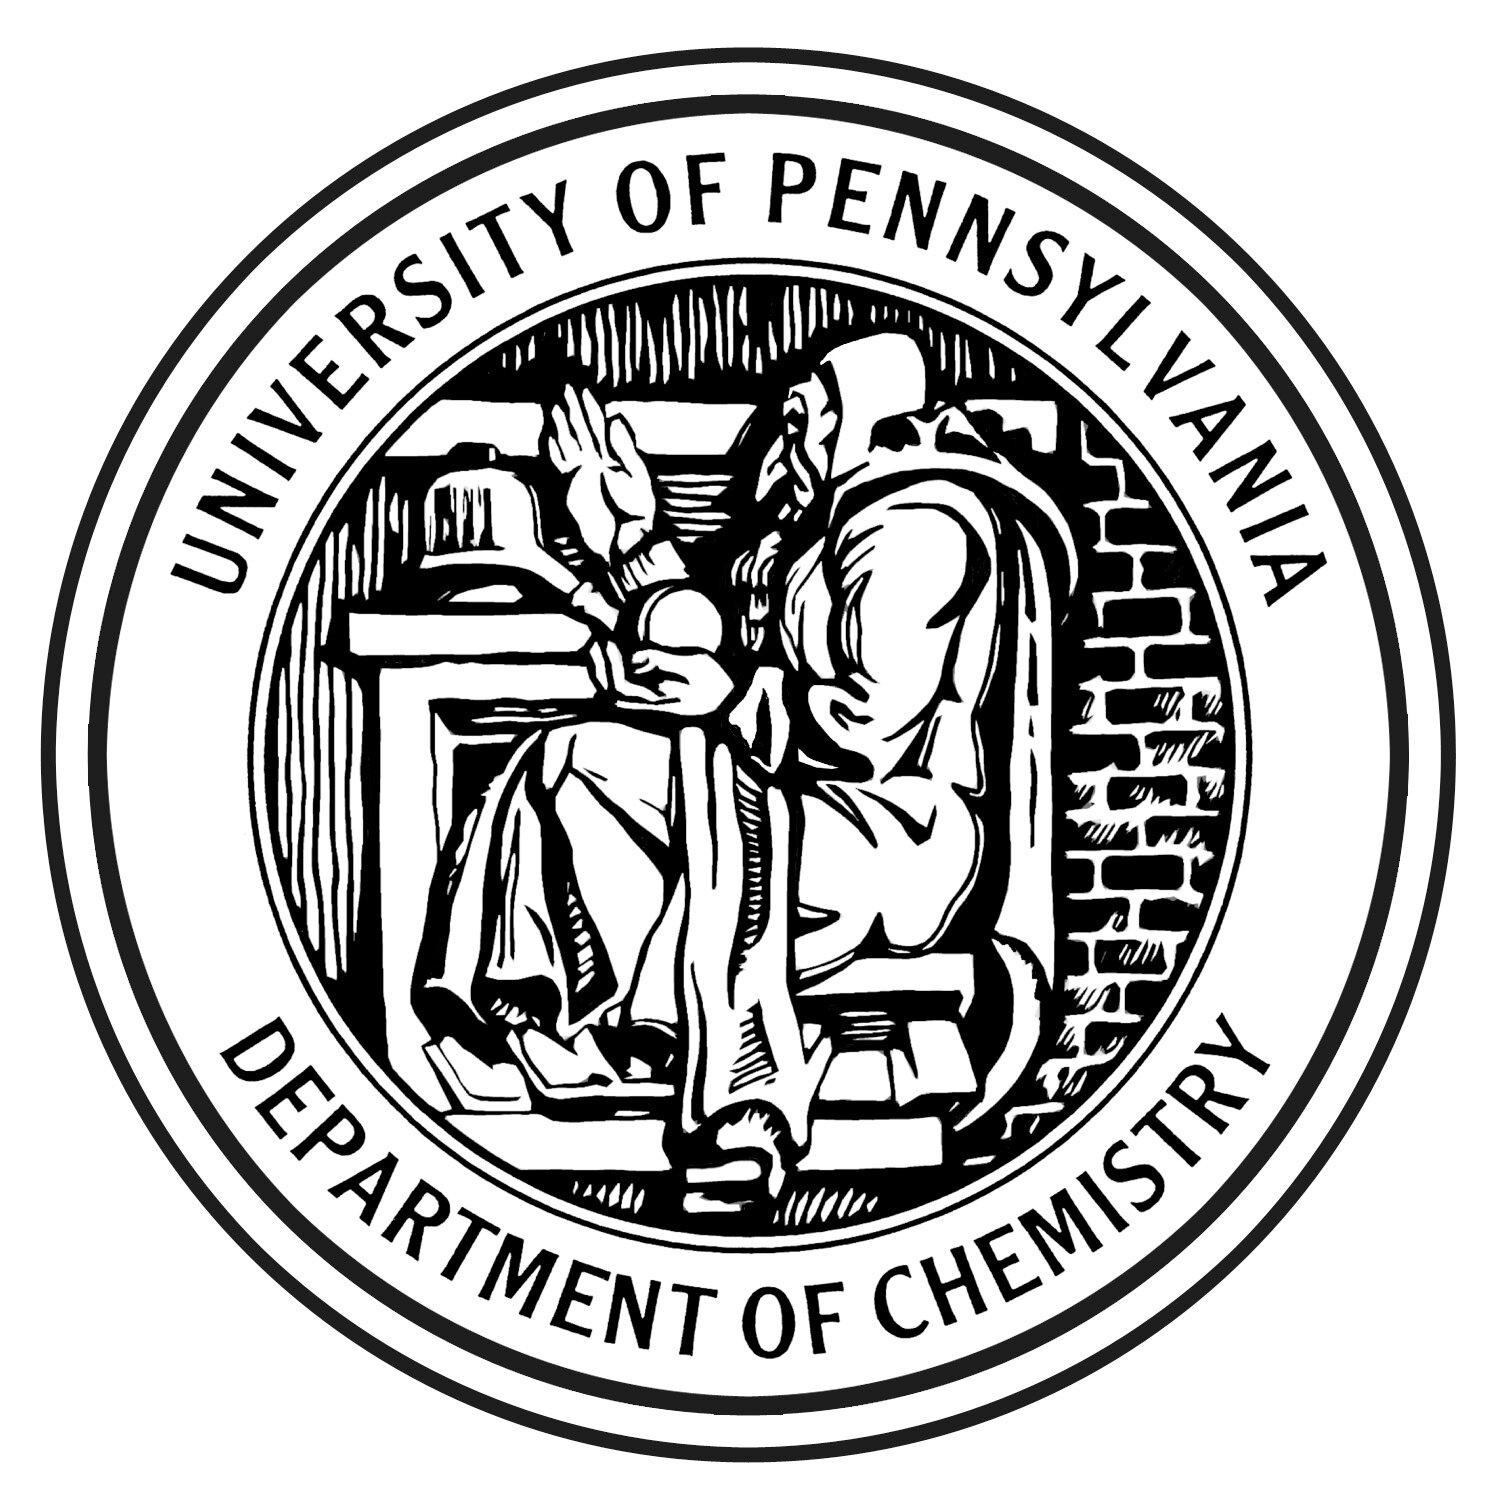 Penn Chemistry On Twitter Day 2 Of 7 7 Black And White Photos Of